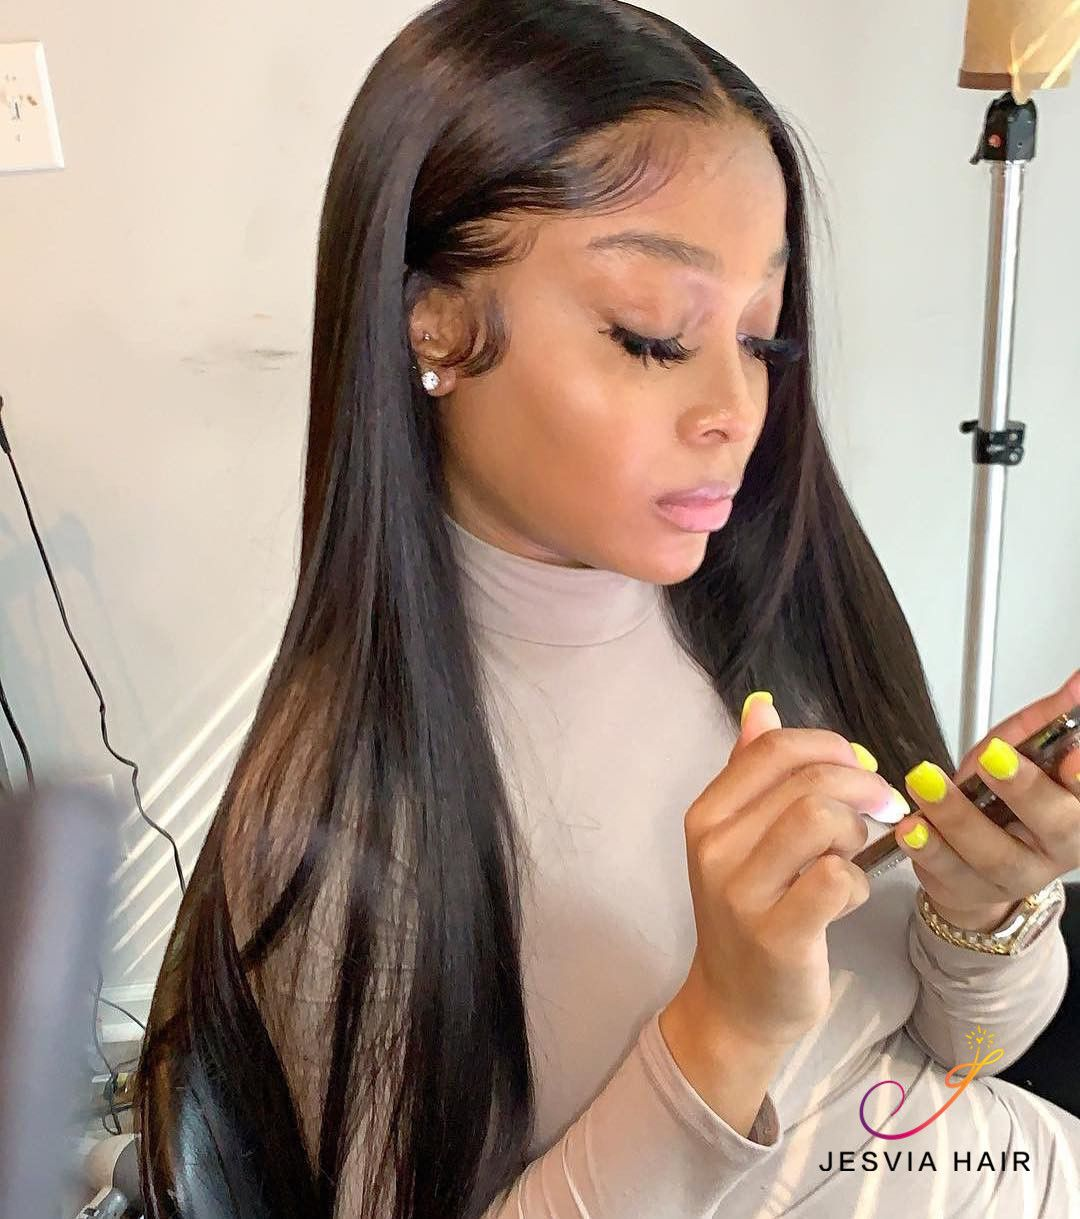 Jesvia Hair Brazilian Straight Hair 3 Bundles With 4x13 Lace Frontal Straight Weave Hairstyles Straight Hairstyles Long Hair Styles